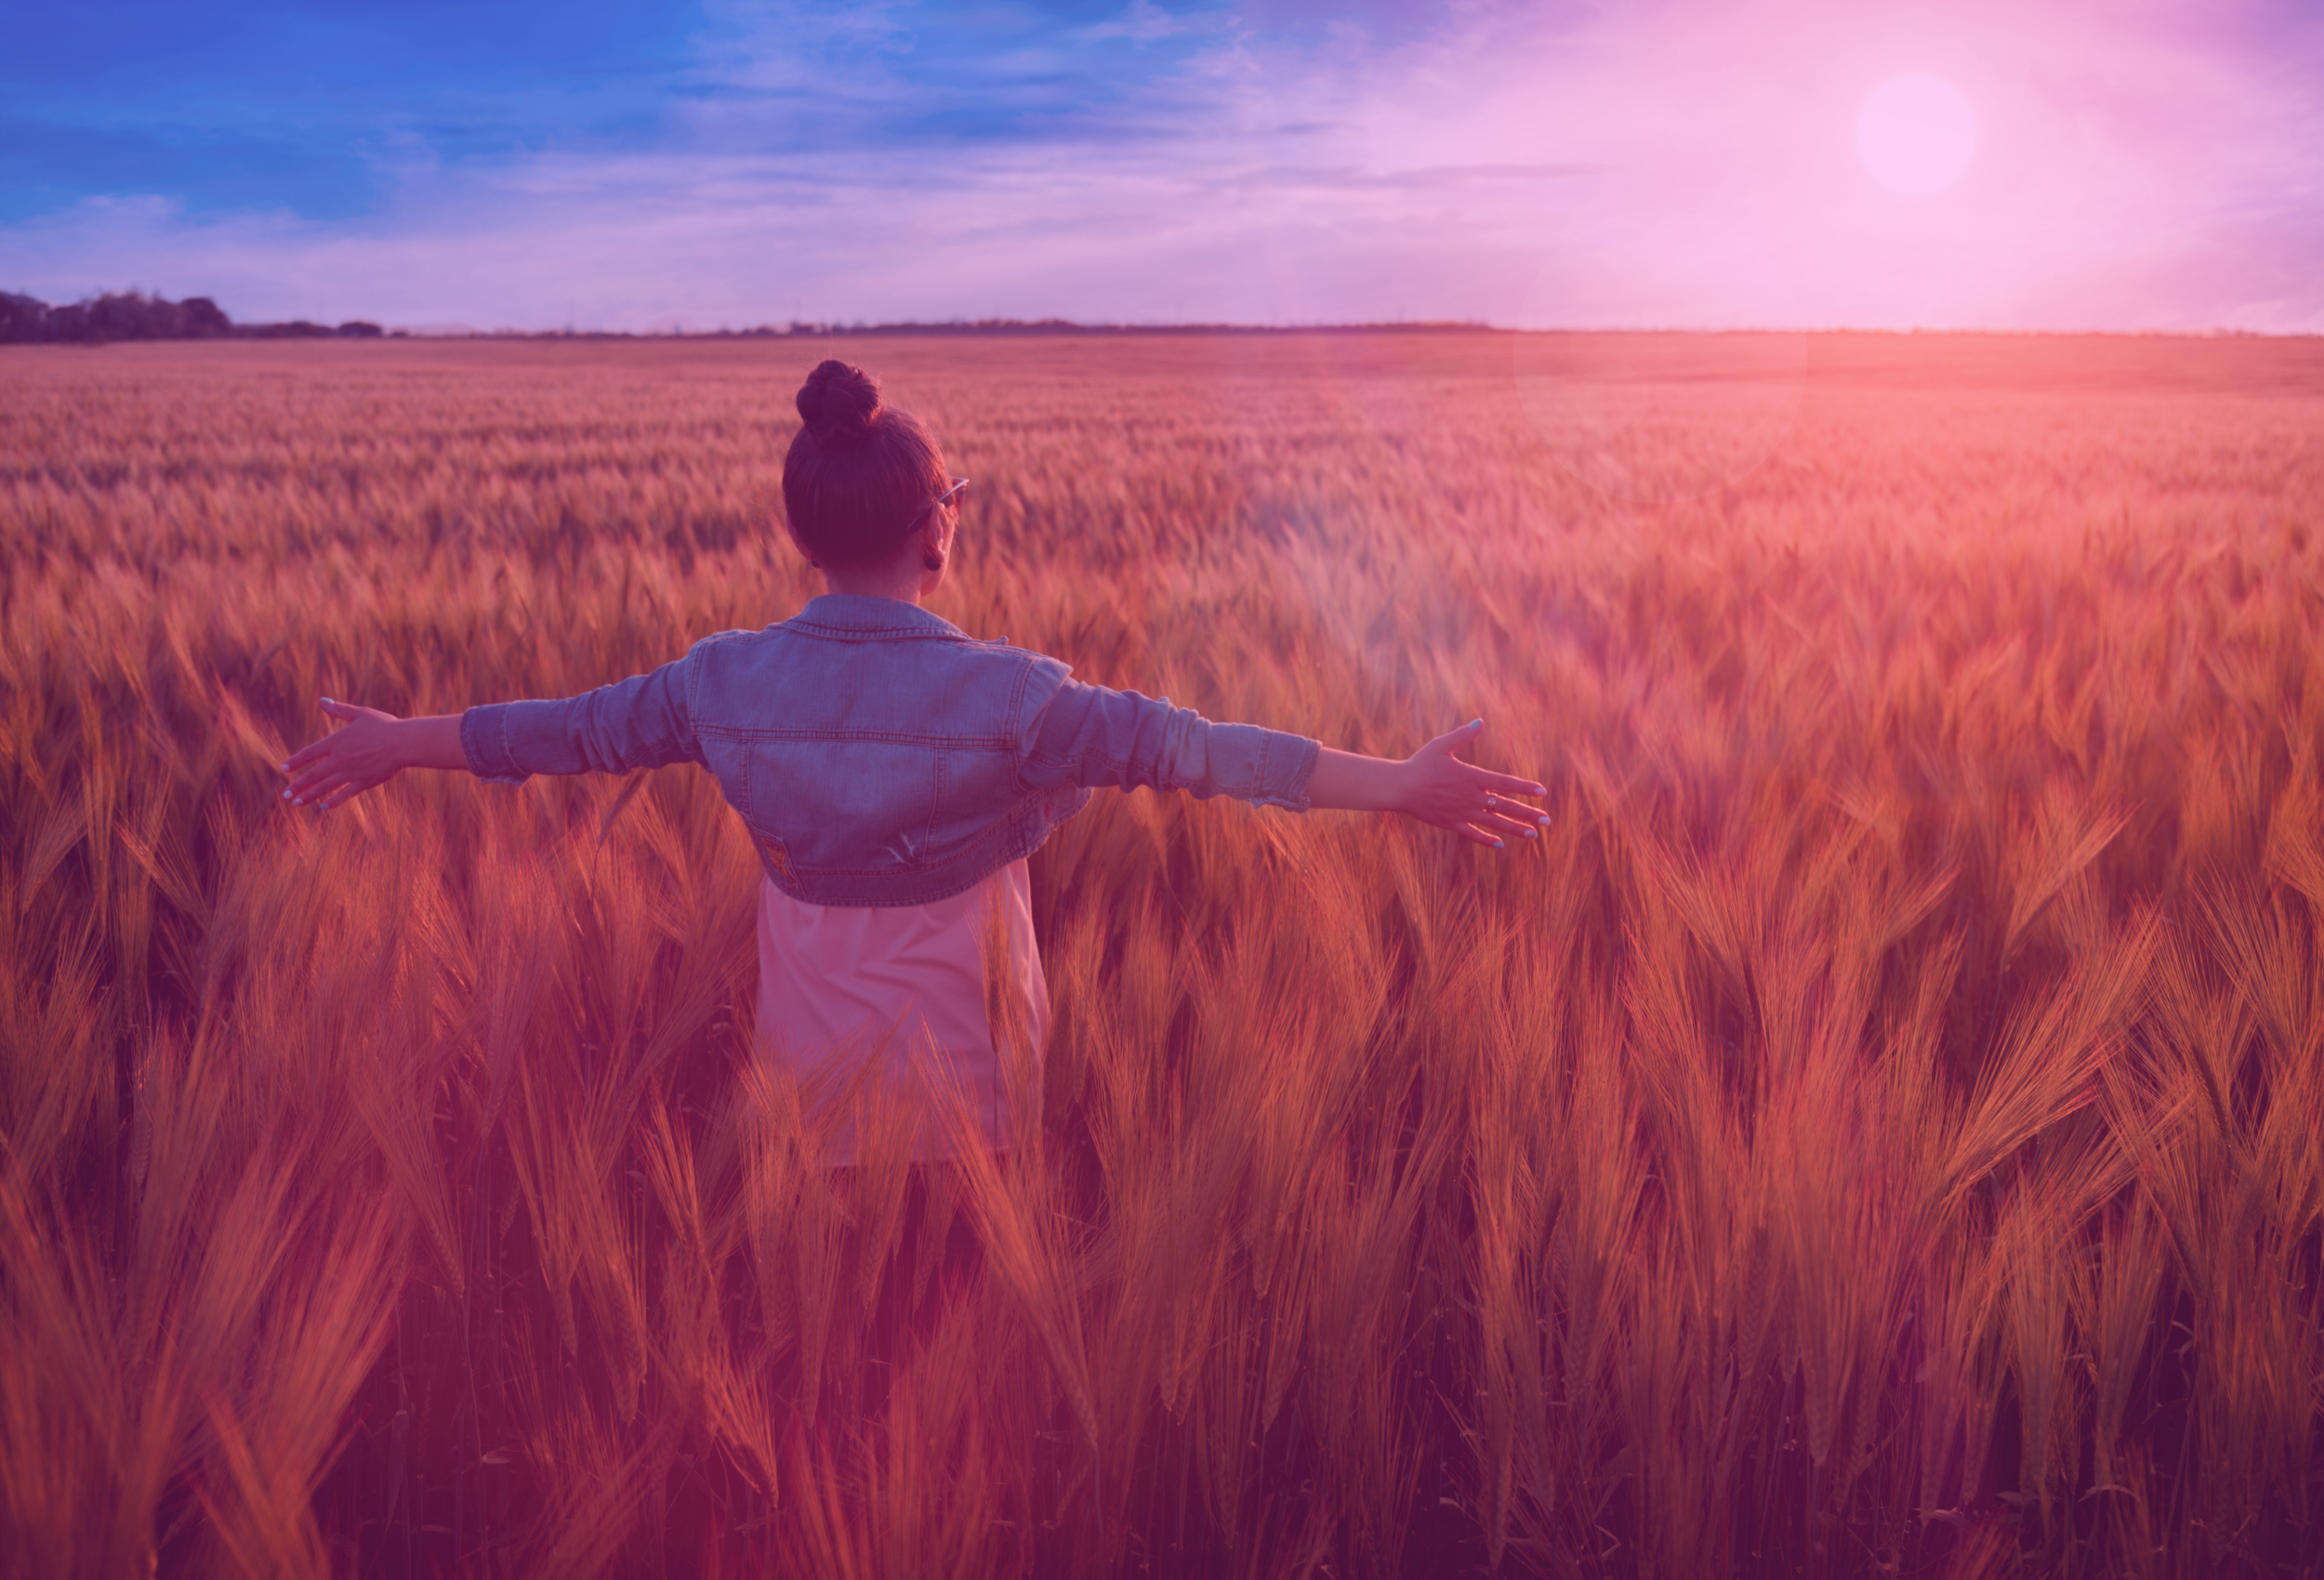 girl in wheat field at sunset